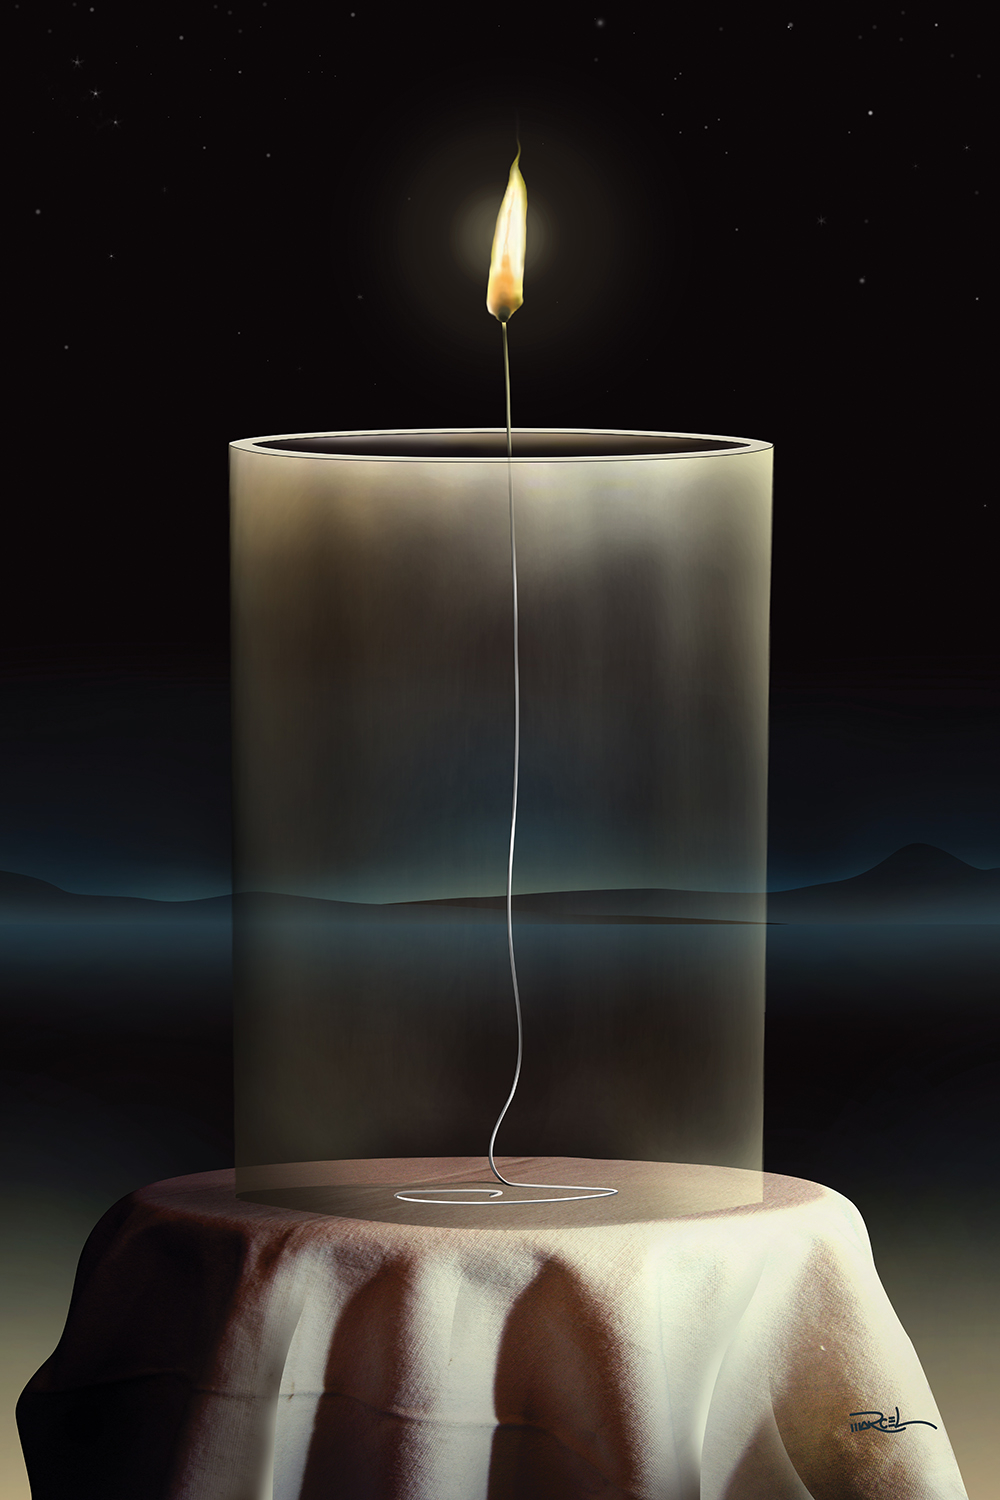 Transparent candle with lit frame on a round tablecloth in front of a dark background